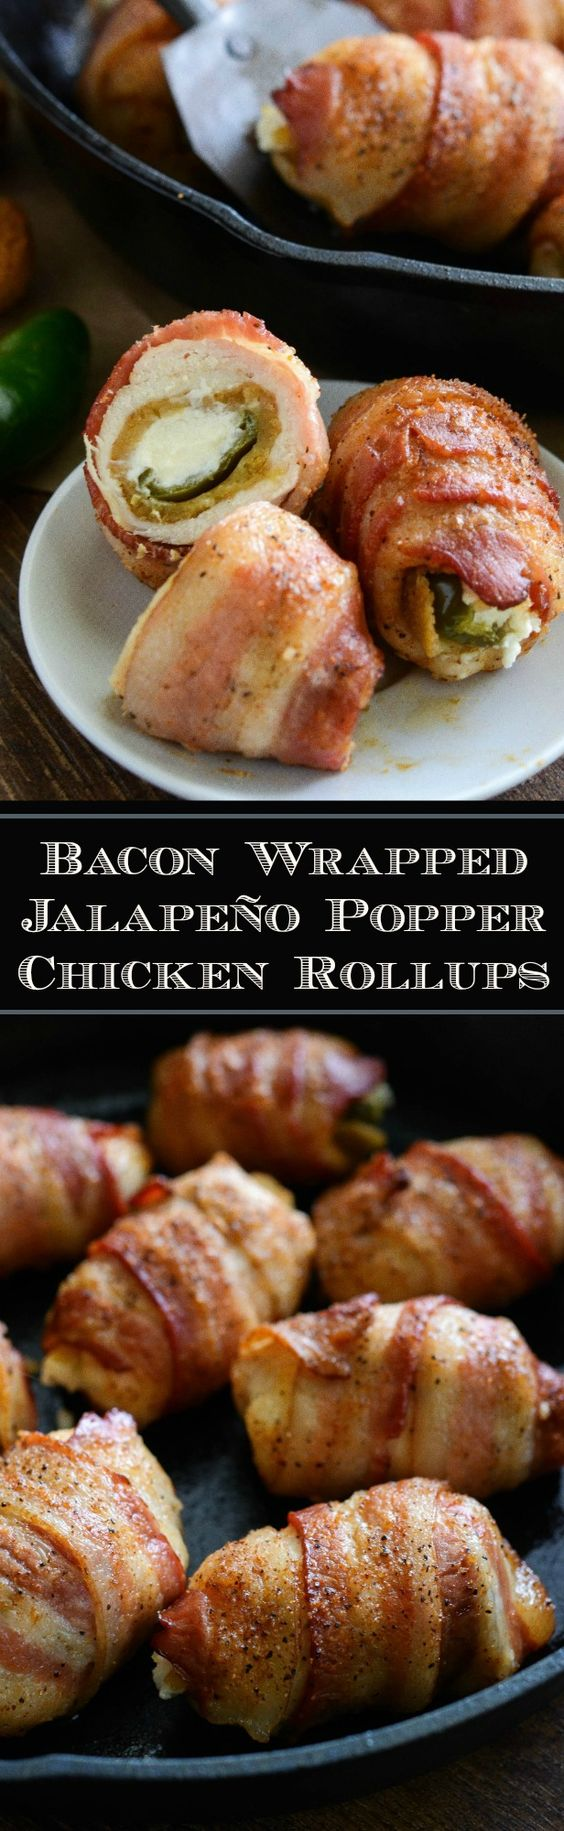 Bacon, Frozen and Bacon wrapped jalapeno poppers on Pinterest